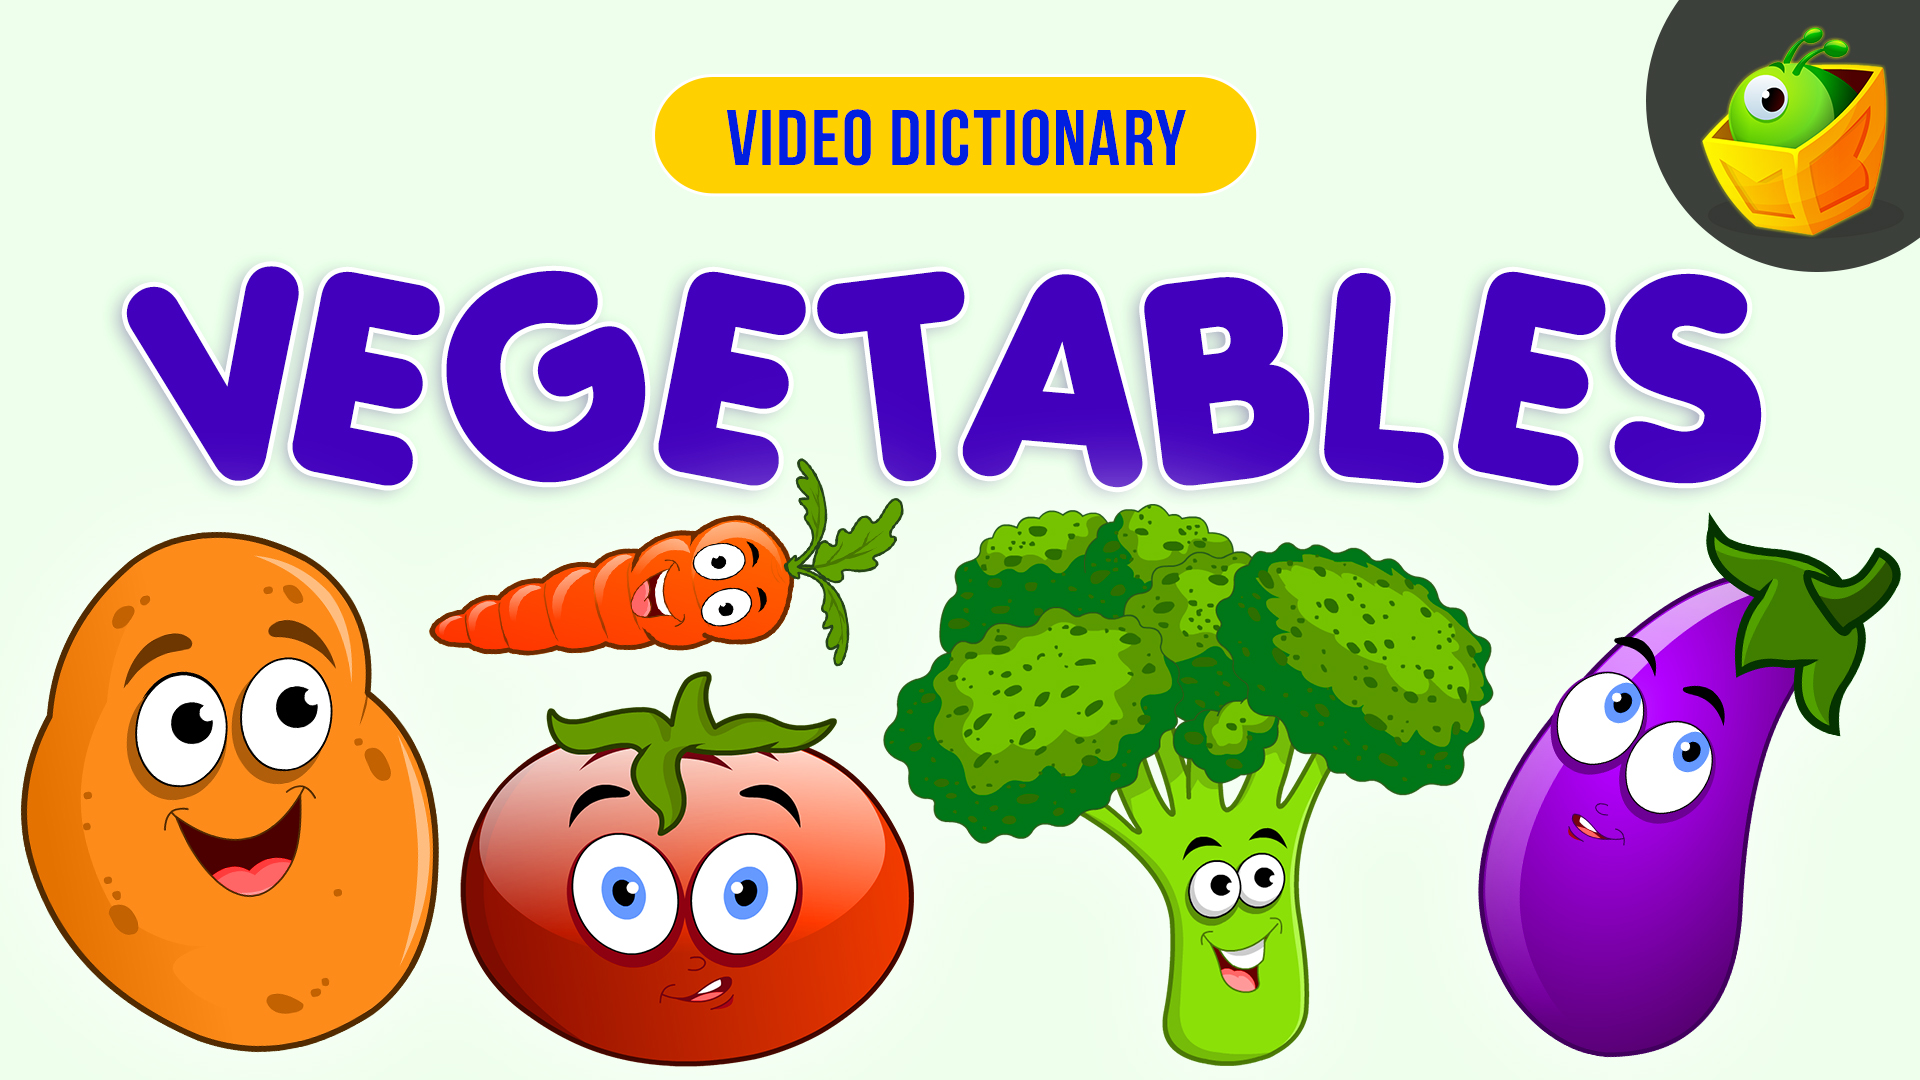 Vegetables - Video Dictionary